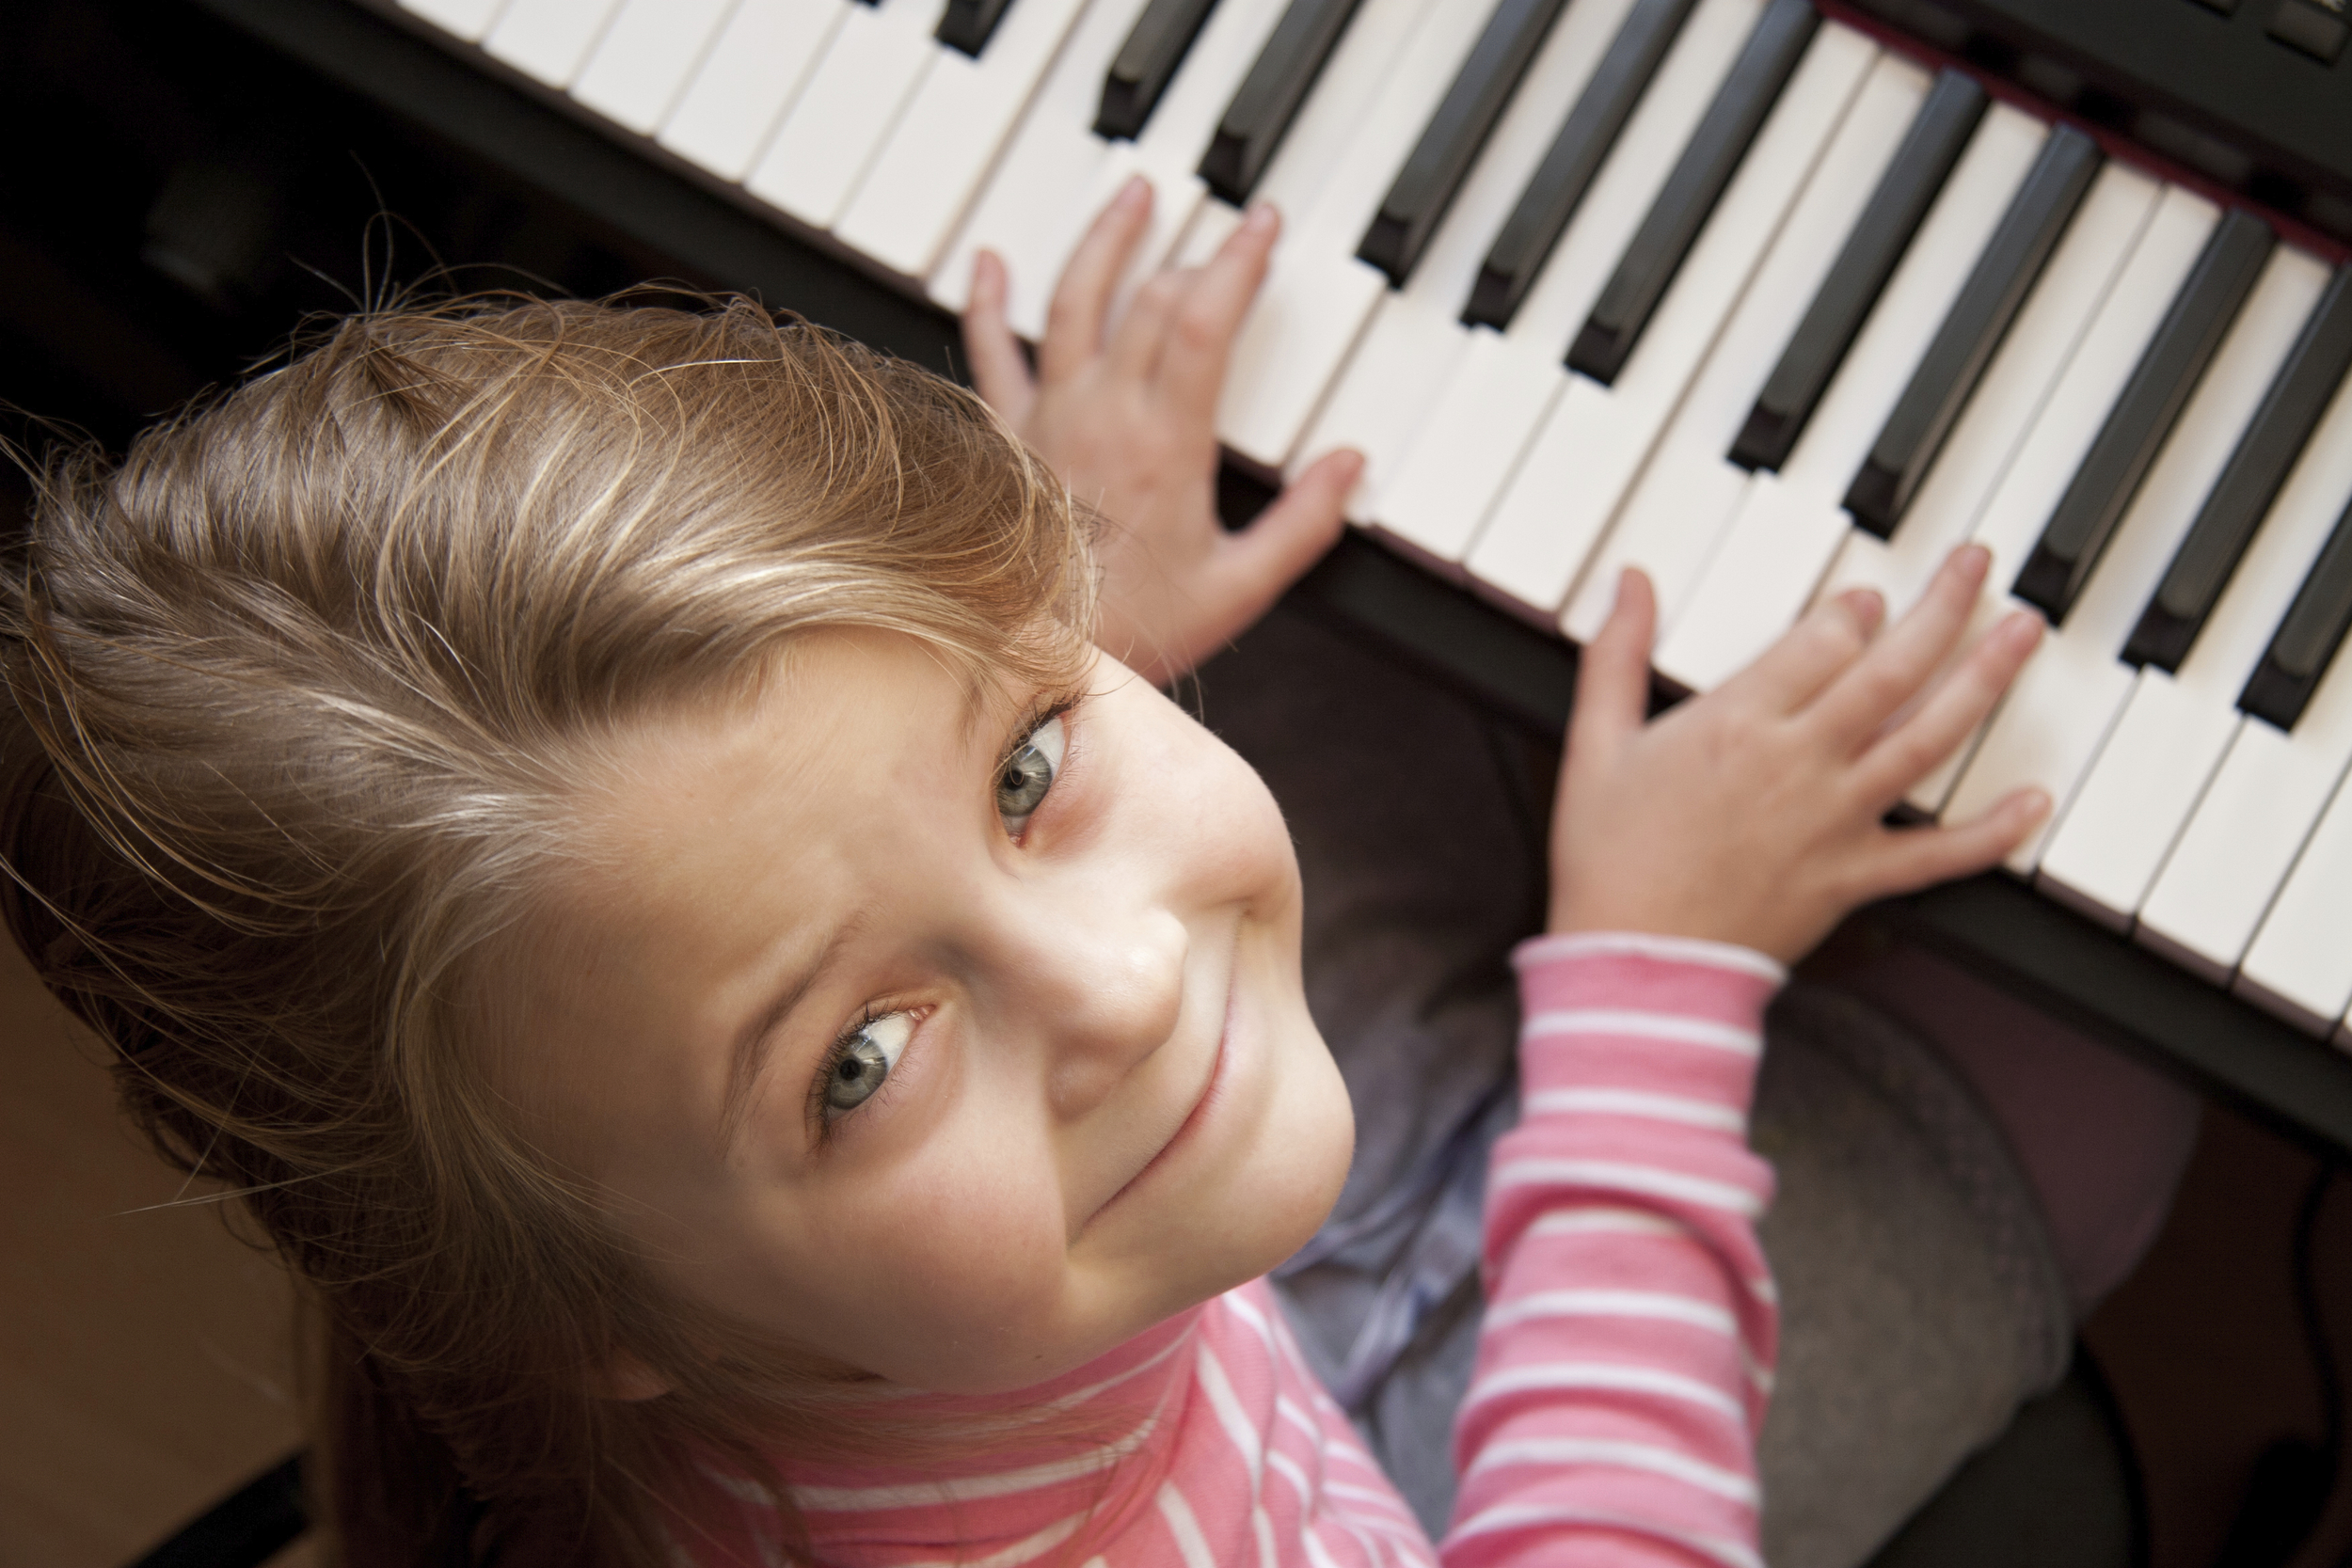 piano girl up above view.jpg